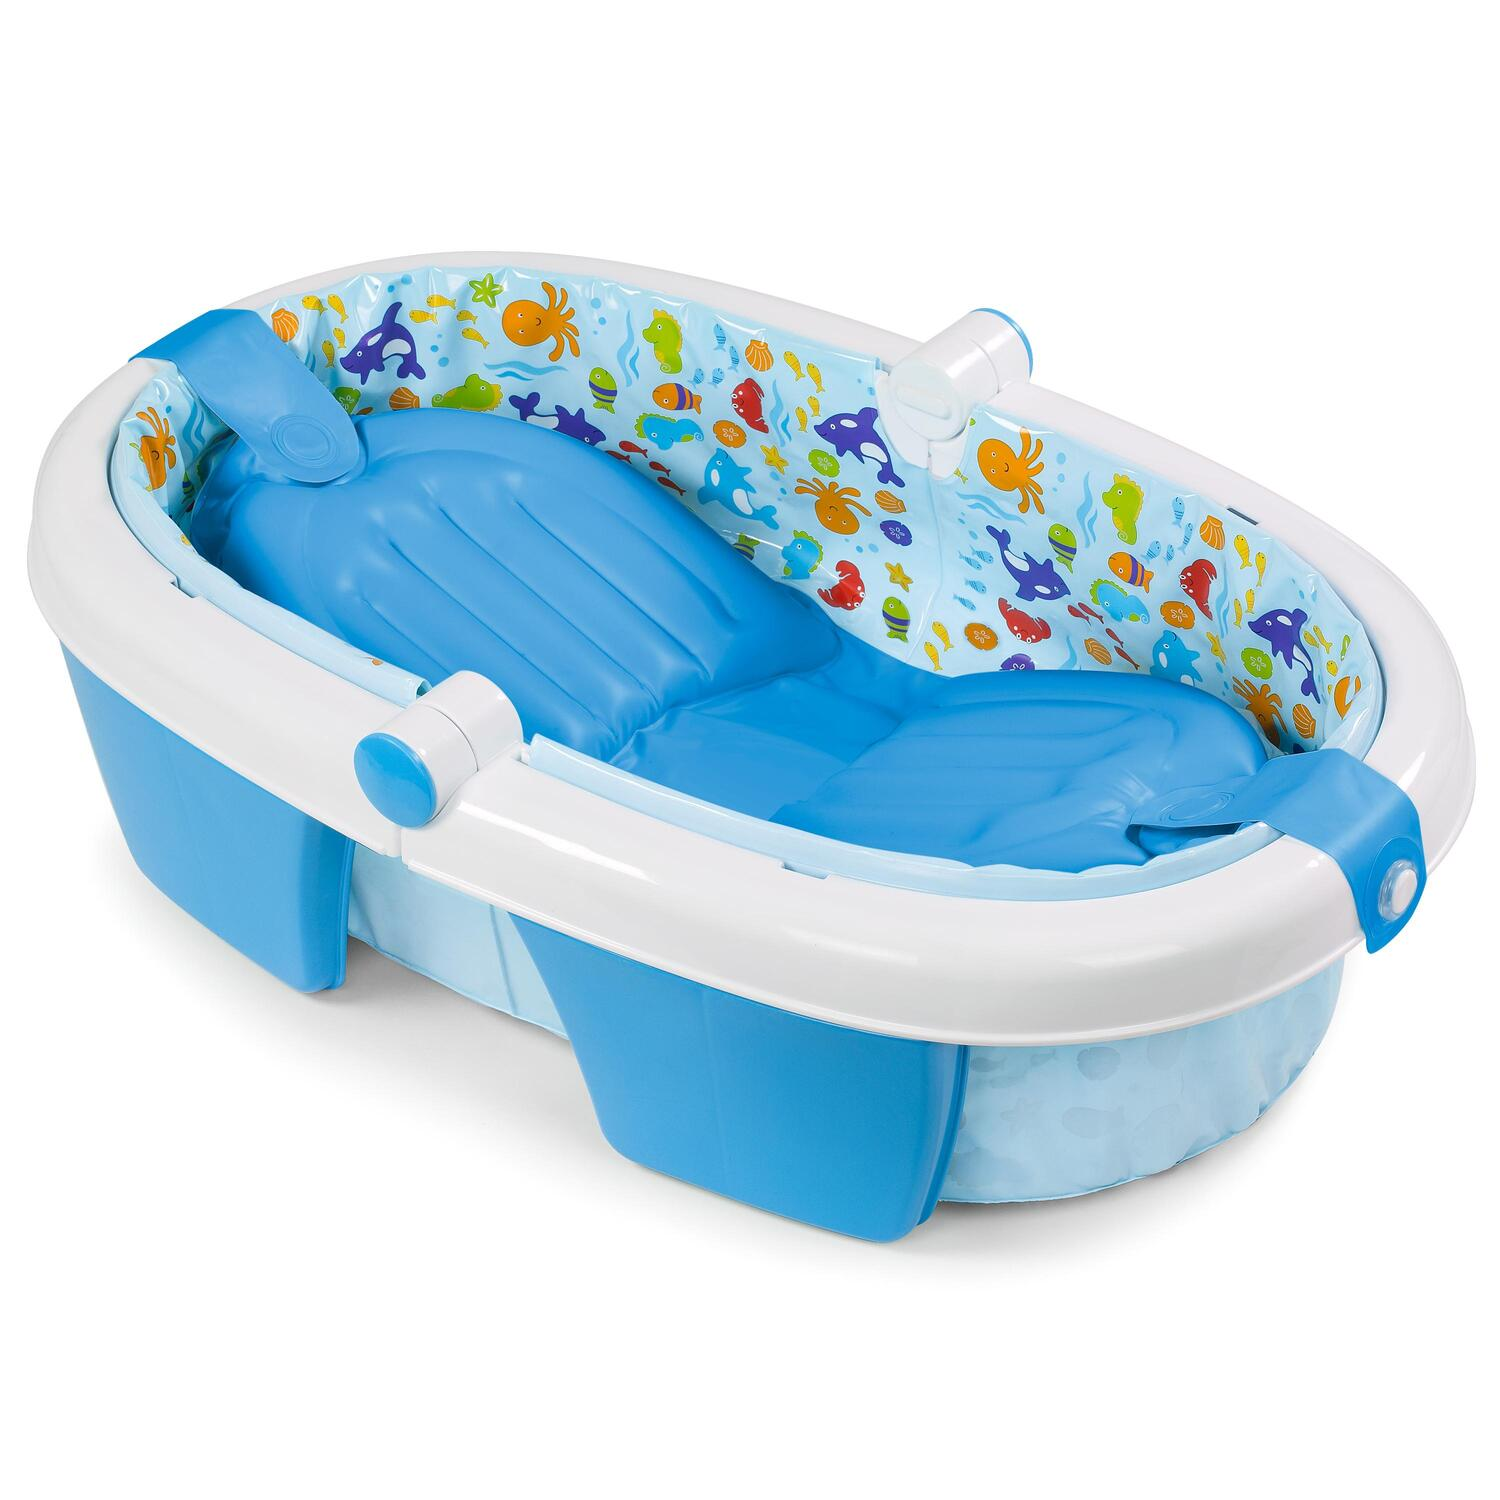 Baby Bath - Health & Safety | OJCommerce